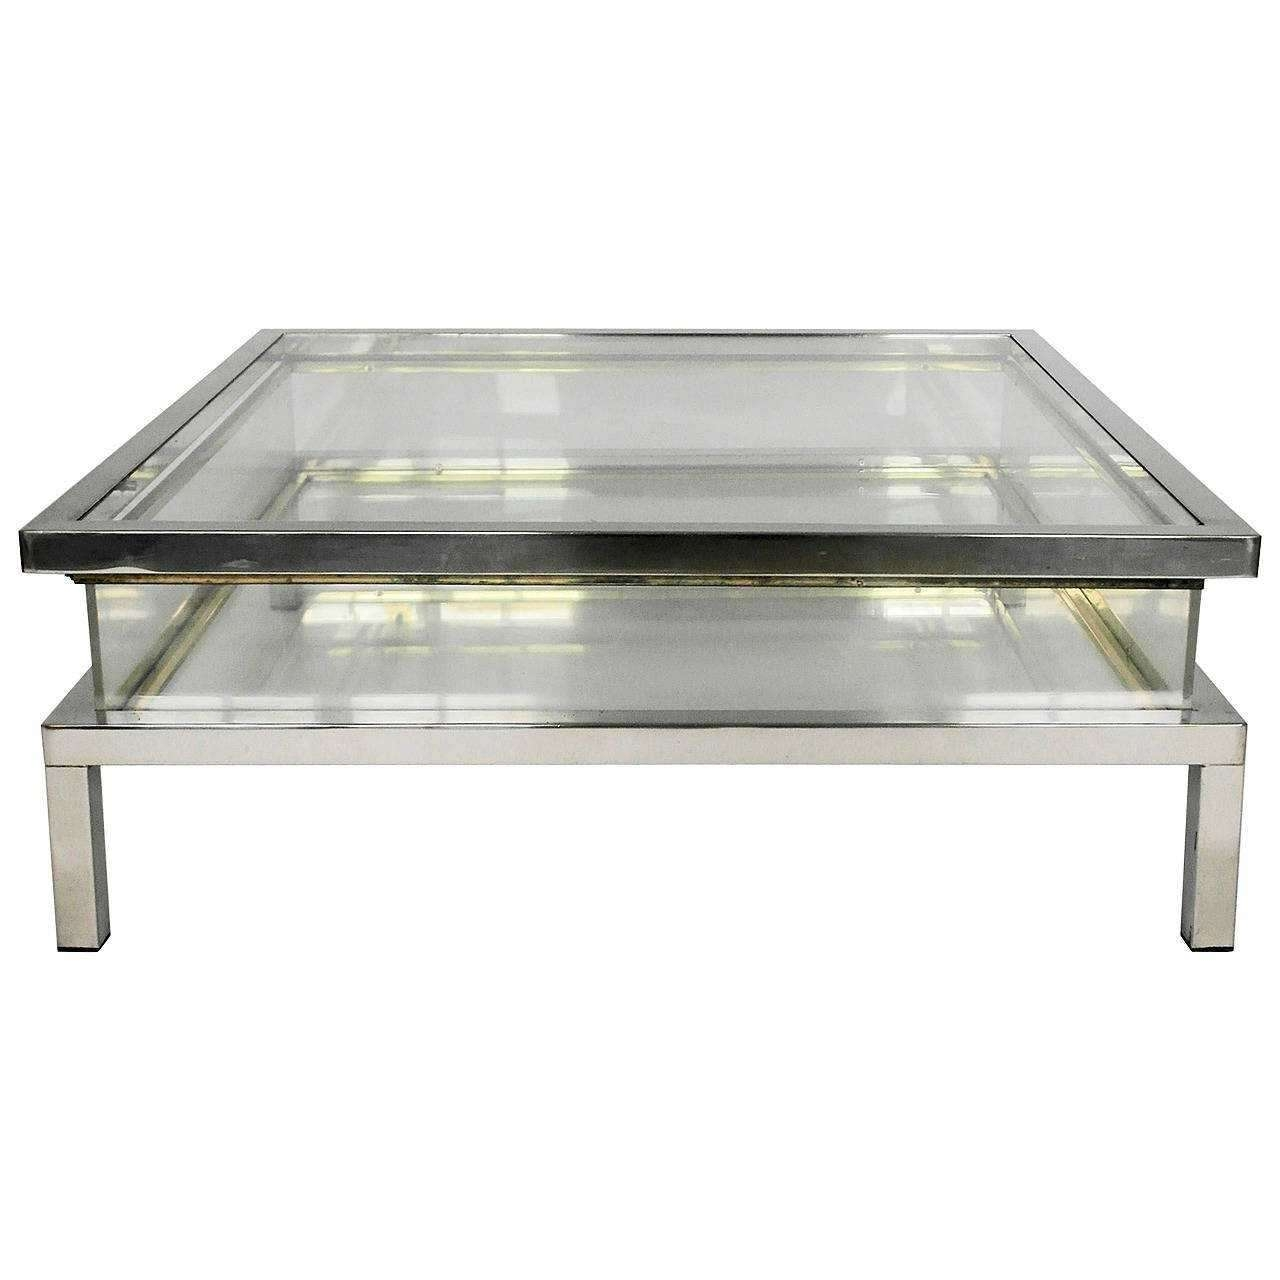 Preferred Chrome Coffee Tables Pertaining To Chrome Coffee Table (View 17 of 20)